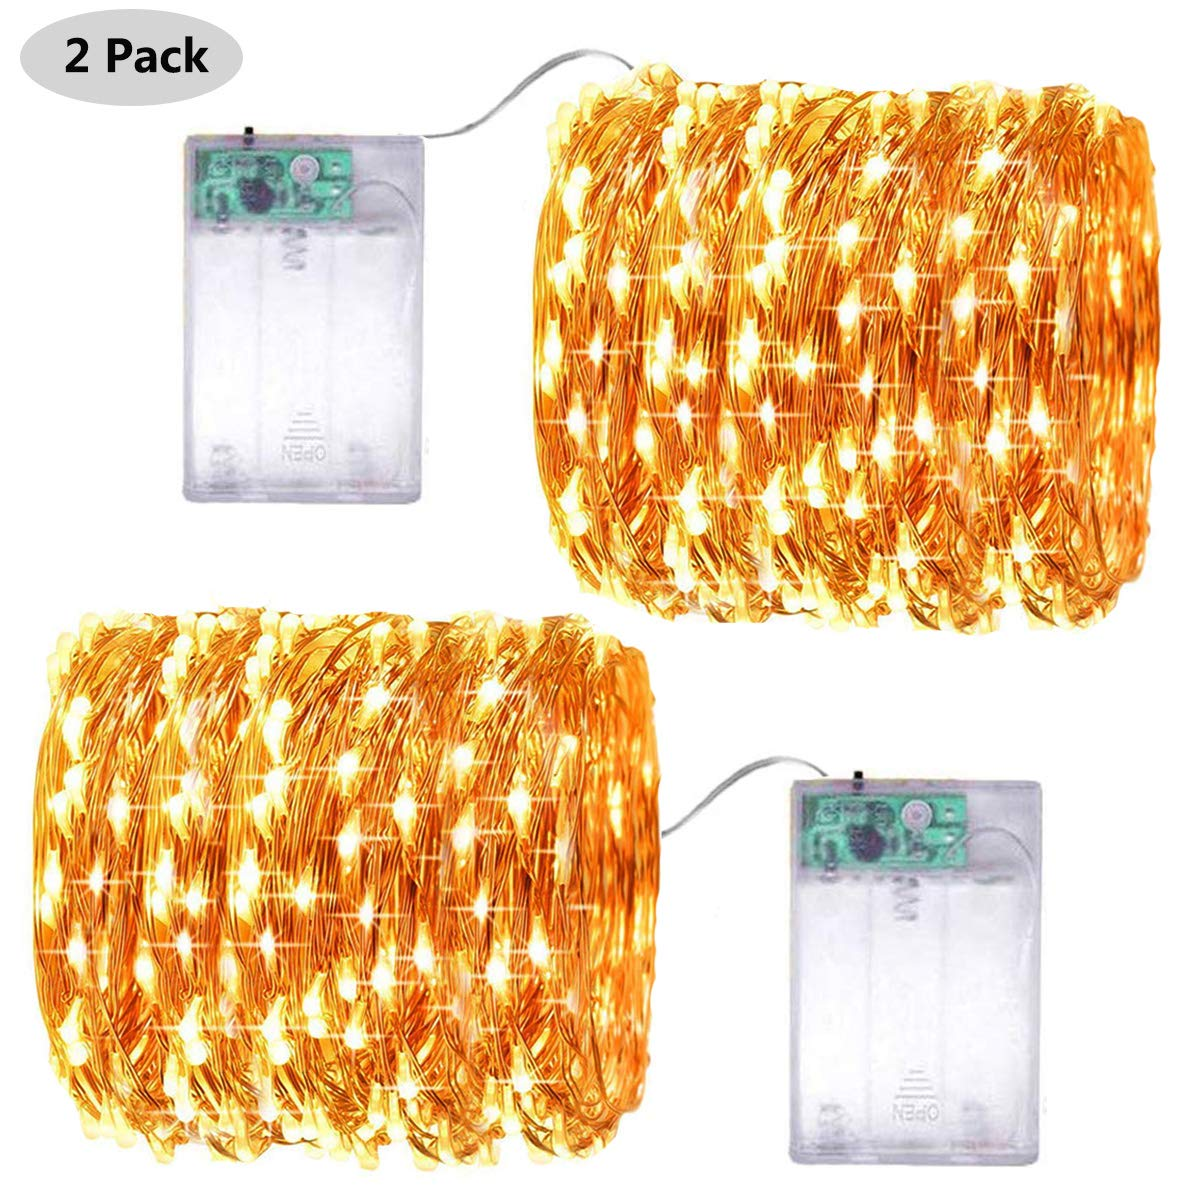 Battery Operated Fairy String Lights, Led Mini String Lights 50 LED 16.5 FT Battery Powered Sliver Wire Starry Fairy Lights for Indoor Outdoor Wedding Home Garden Party Decoration (Warm White)